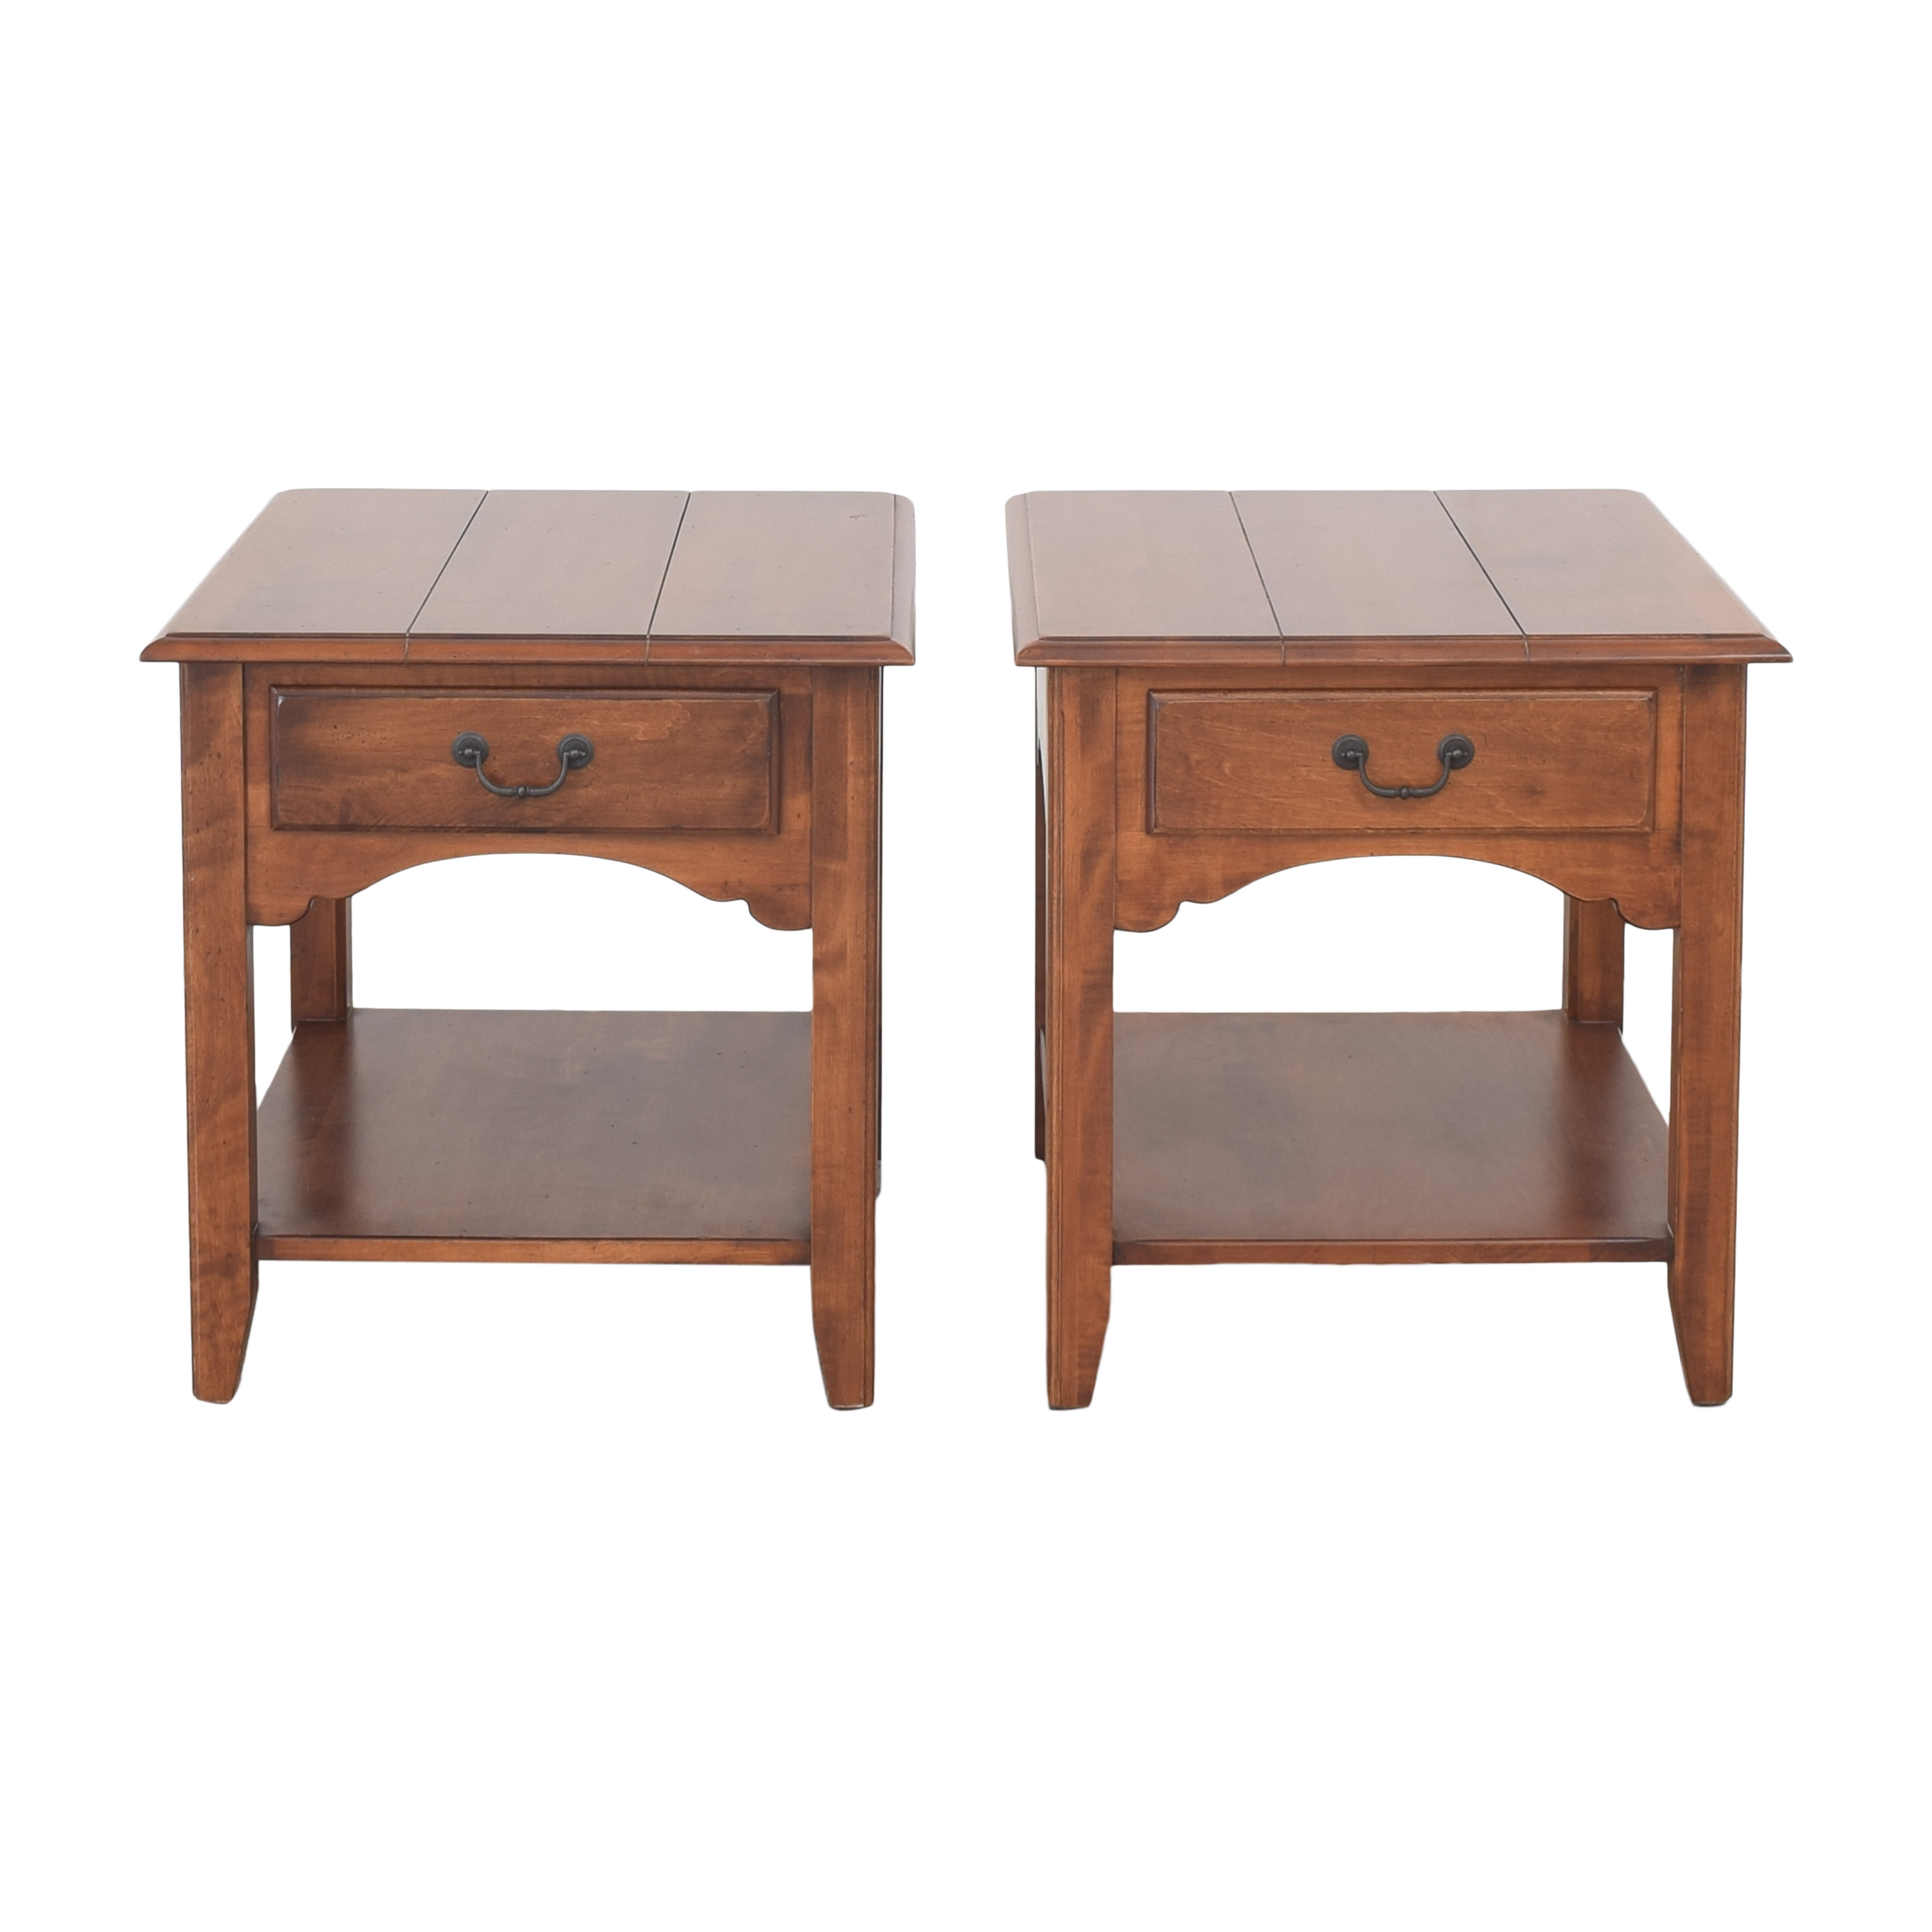 Ethan Allen Ethan Allen Country Crossing End Tables brown